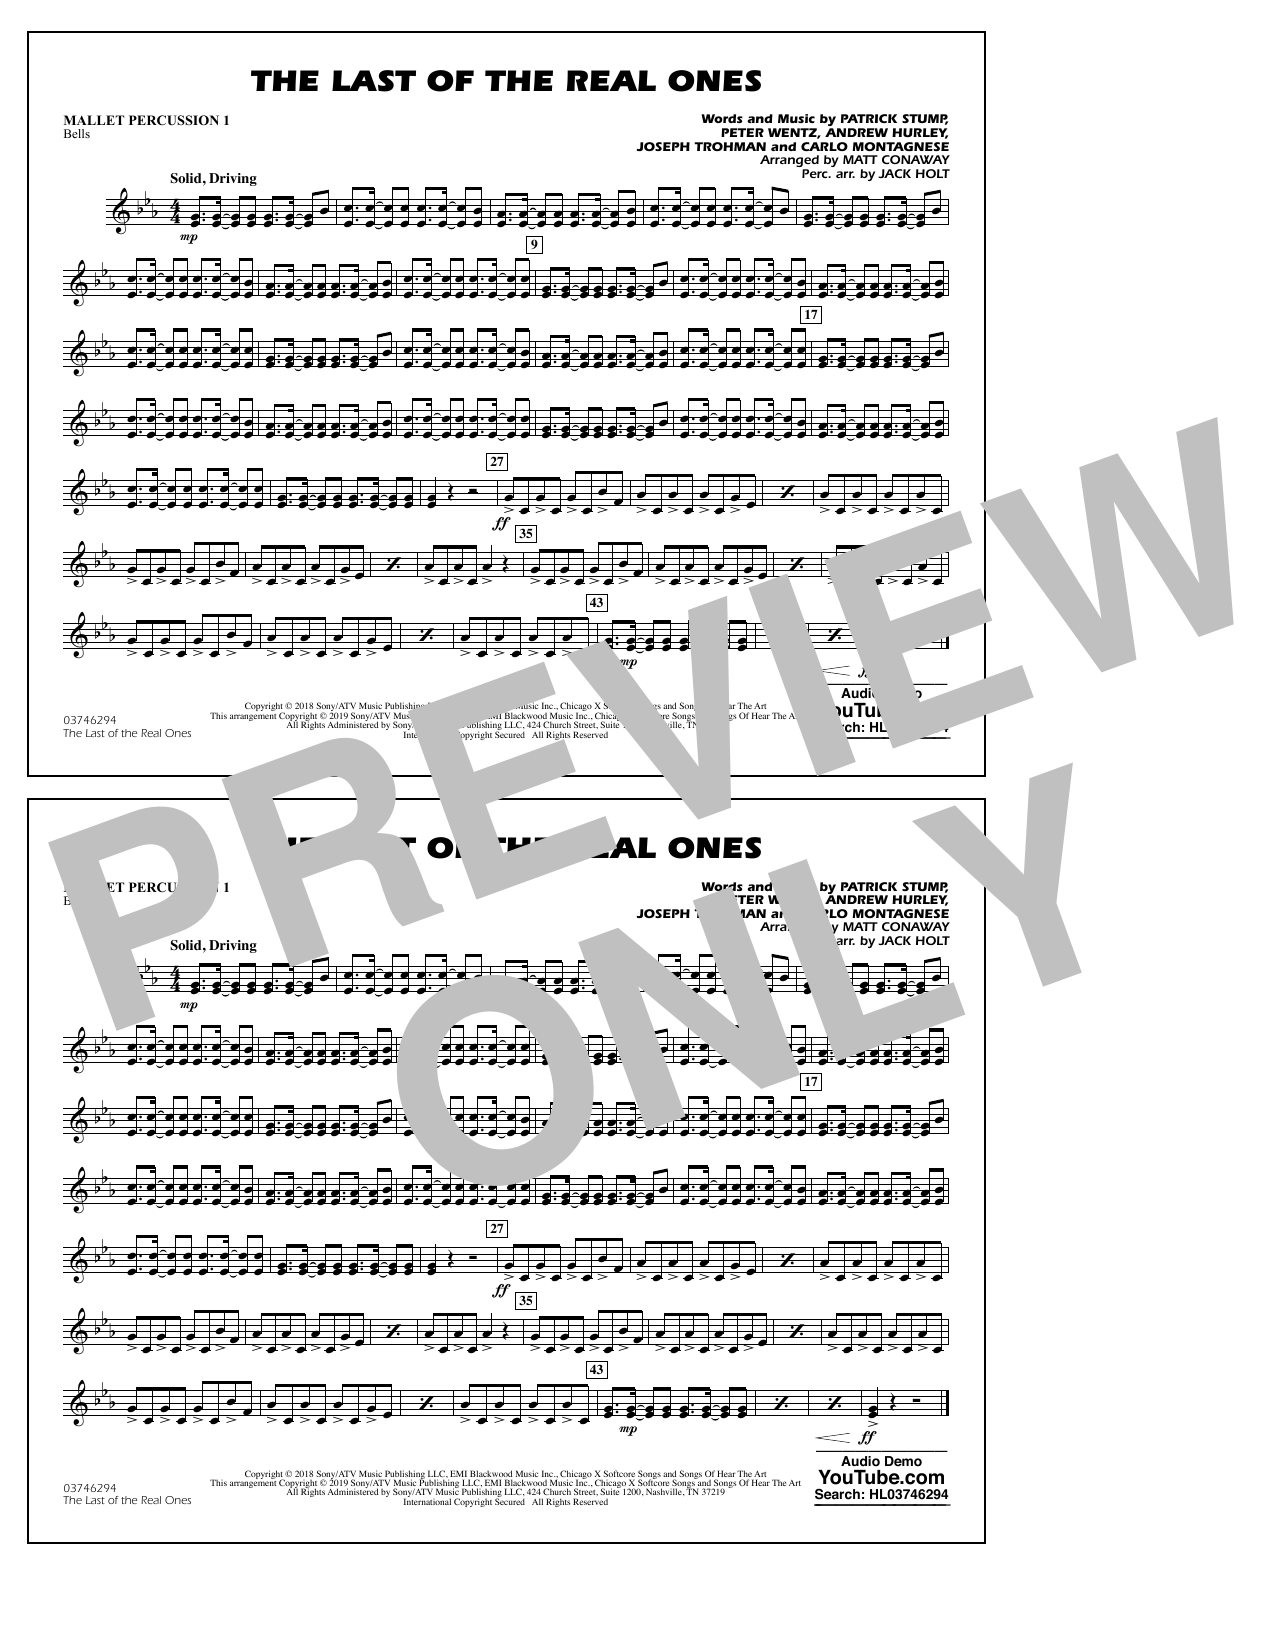 Last of the Real Ones (arr. Matt Conaway) - Mallet Percussion 1 (Marching Band)